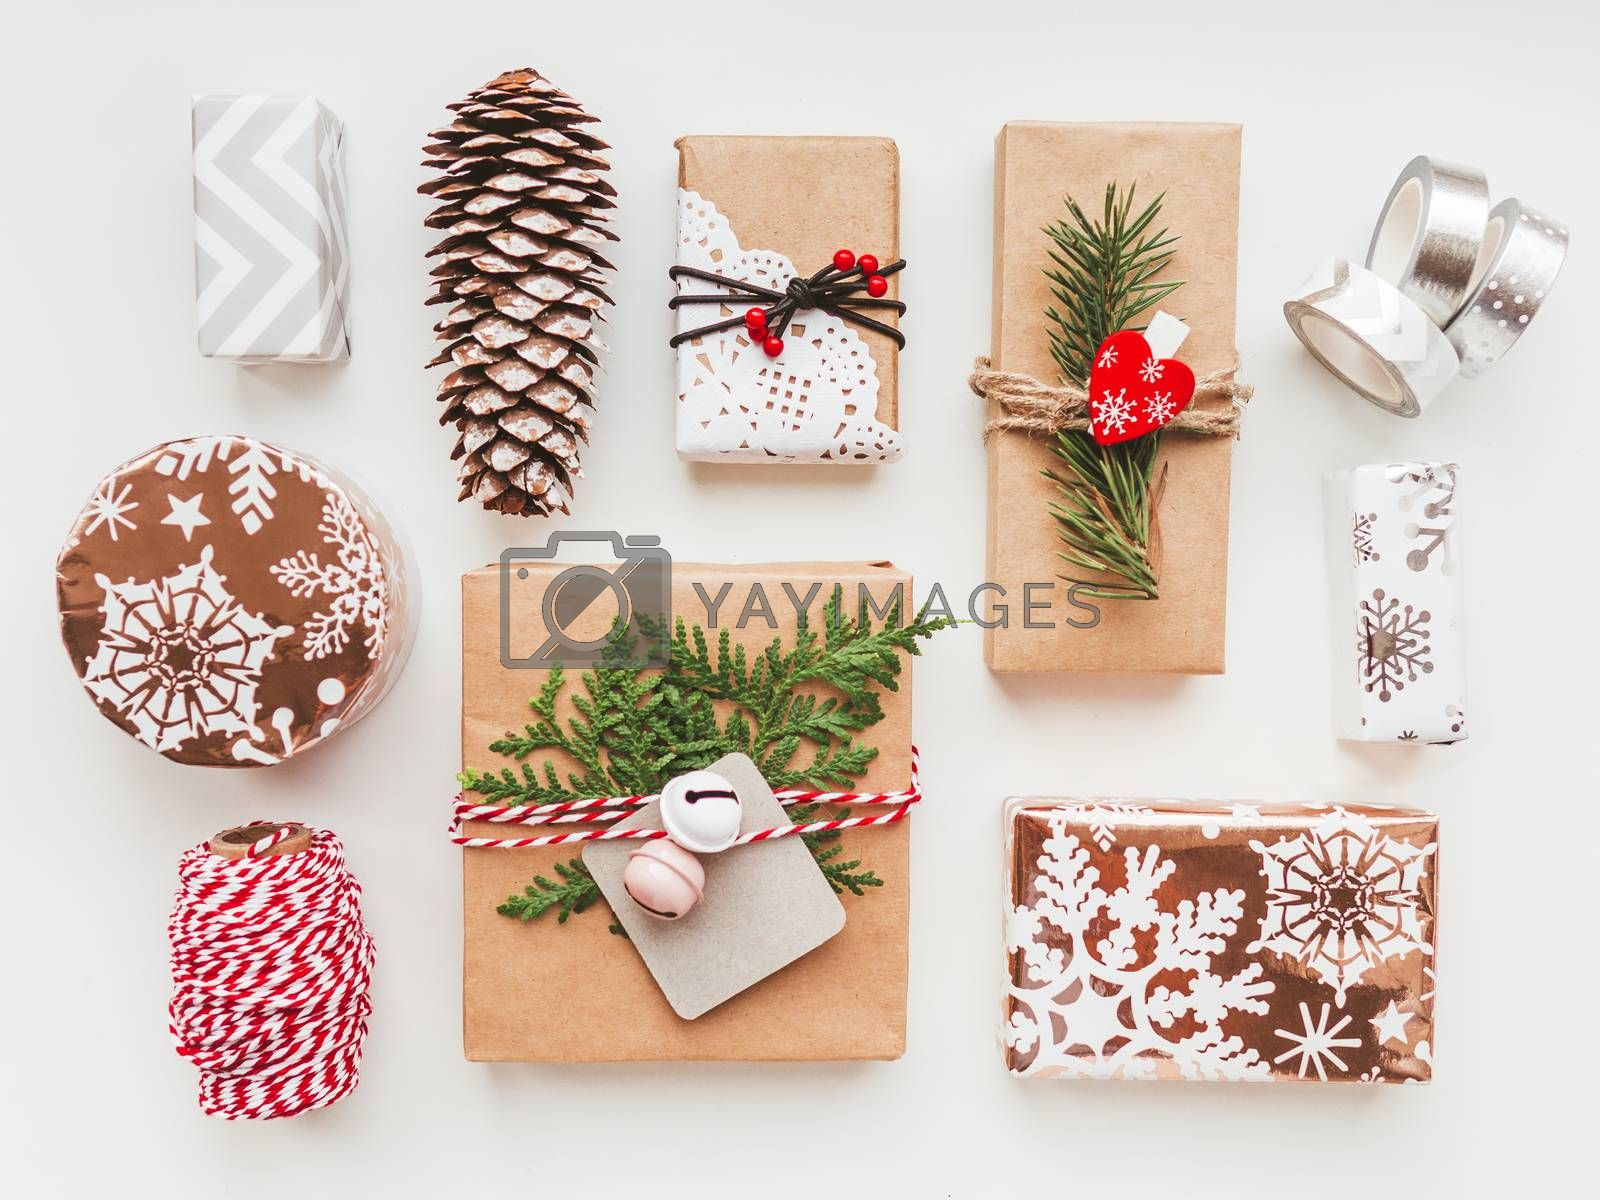 Christmas DIY presents wrapped in craft paper with fir tree twigs and red heart and bells. Top view on decorations on New Year gifts. Festive background. Winter holiday spirit.